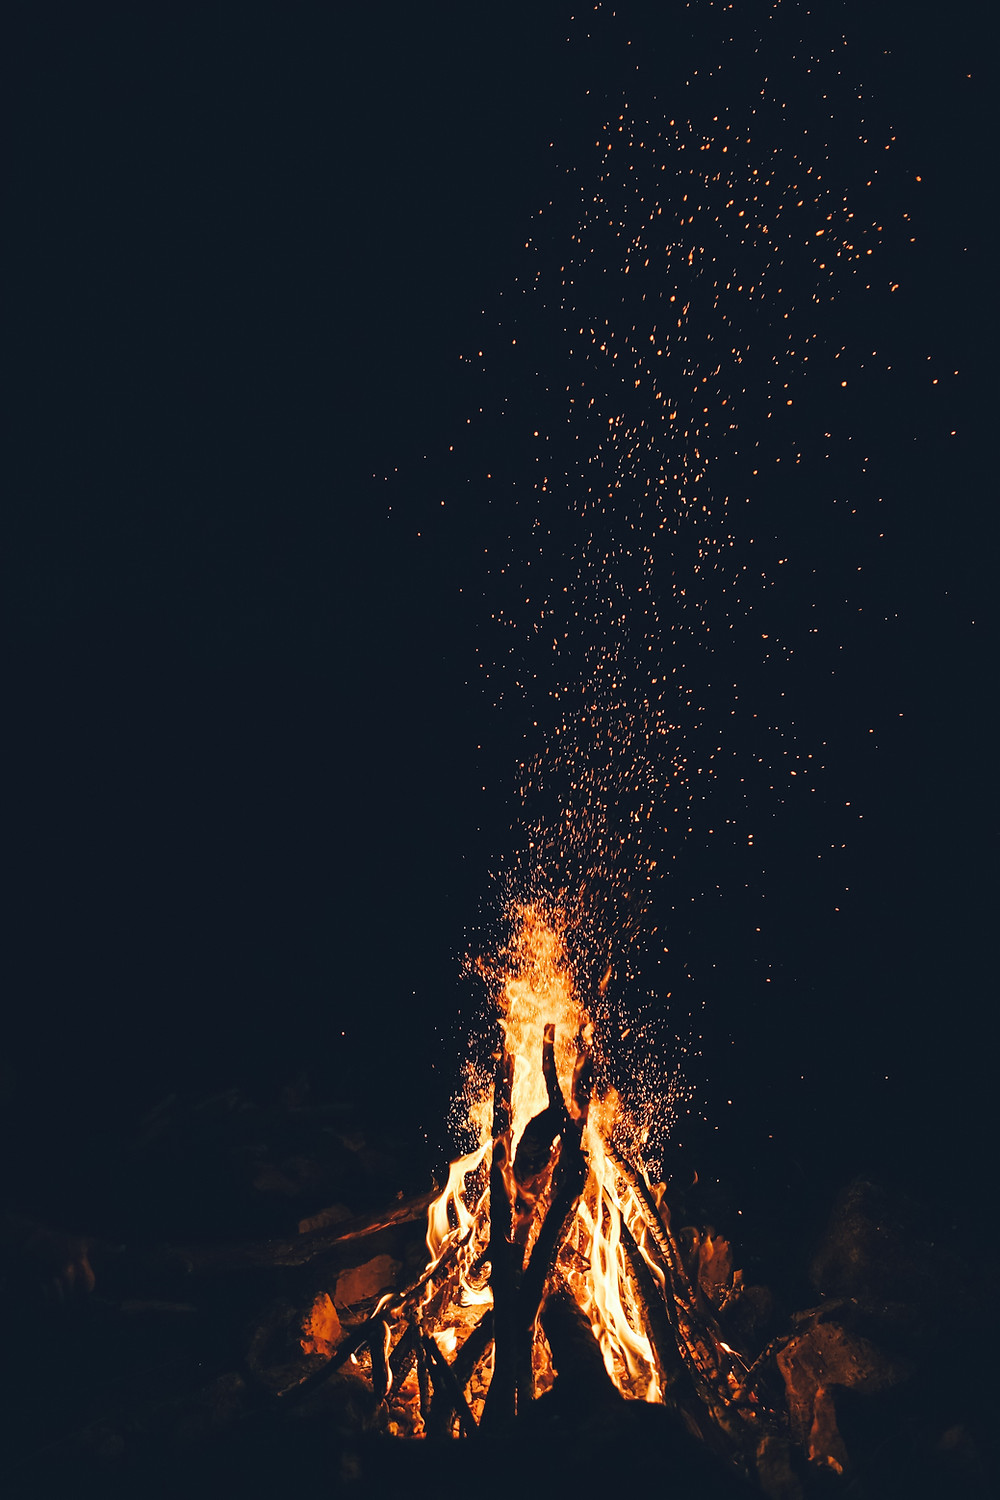 Camp fire spewing sparks